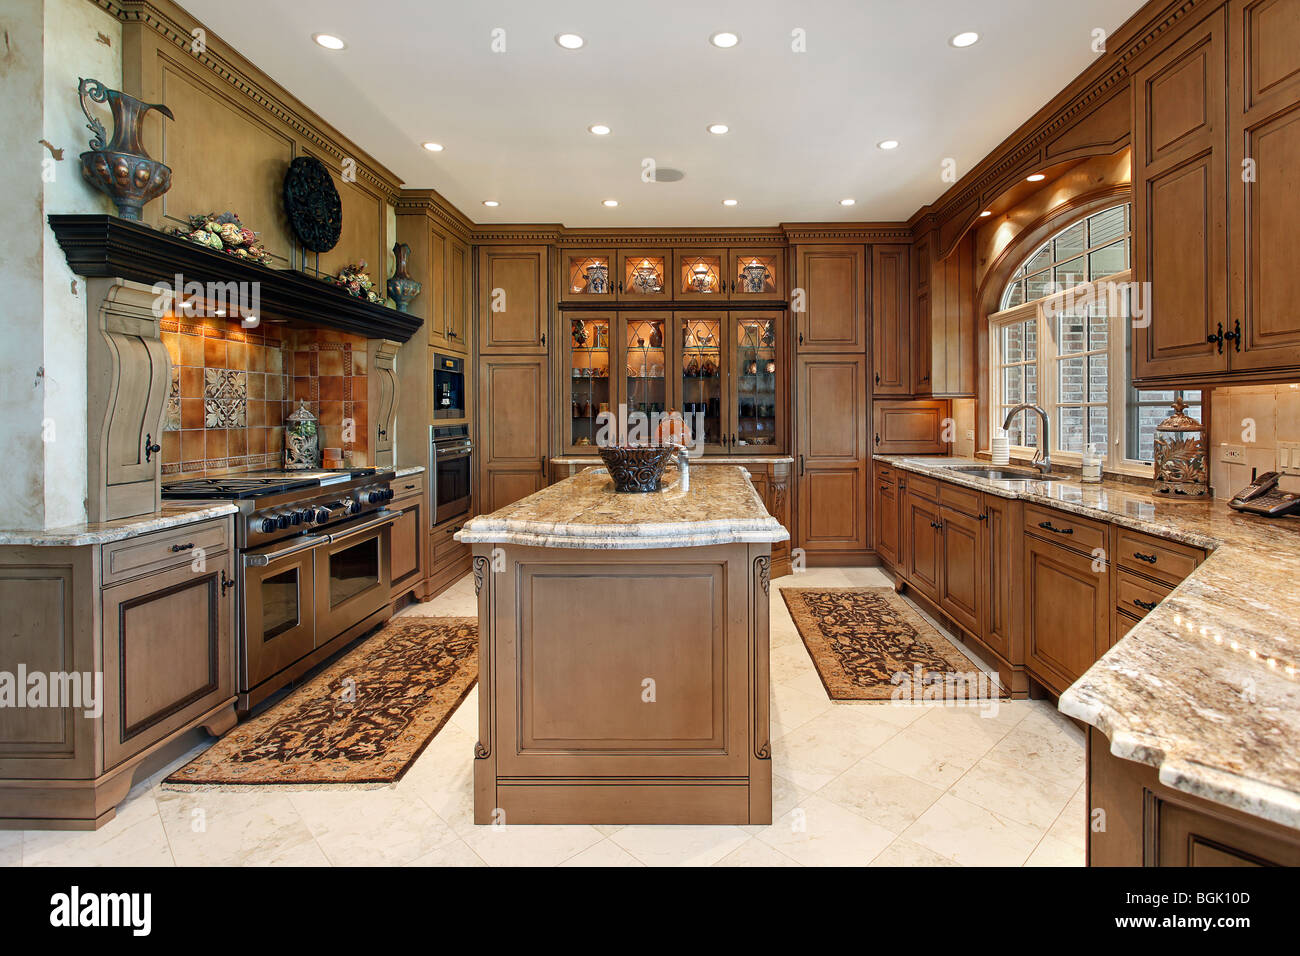 Country Kitchen In Luxury Home With Tiled Stove Backsplash